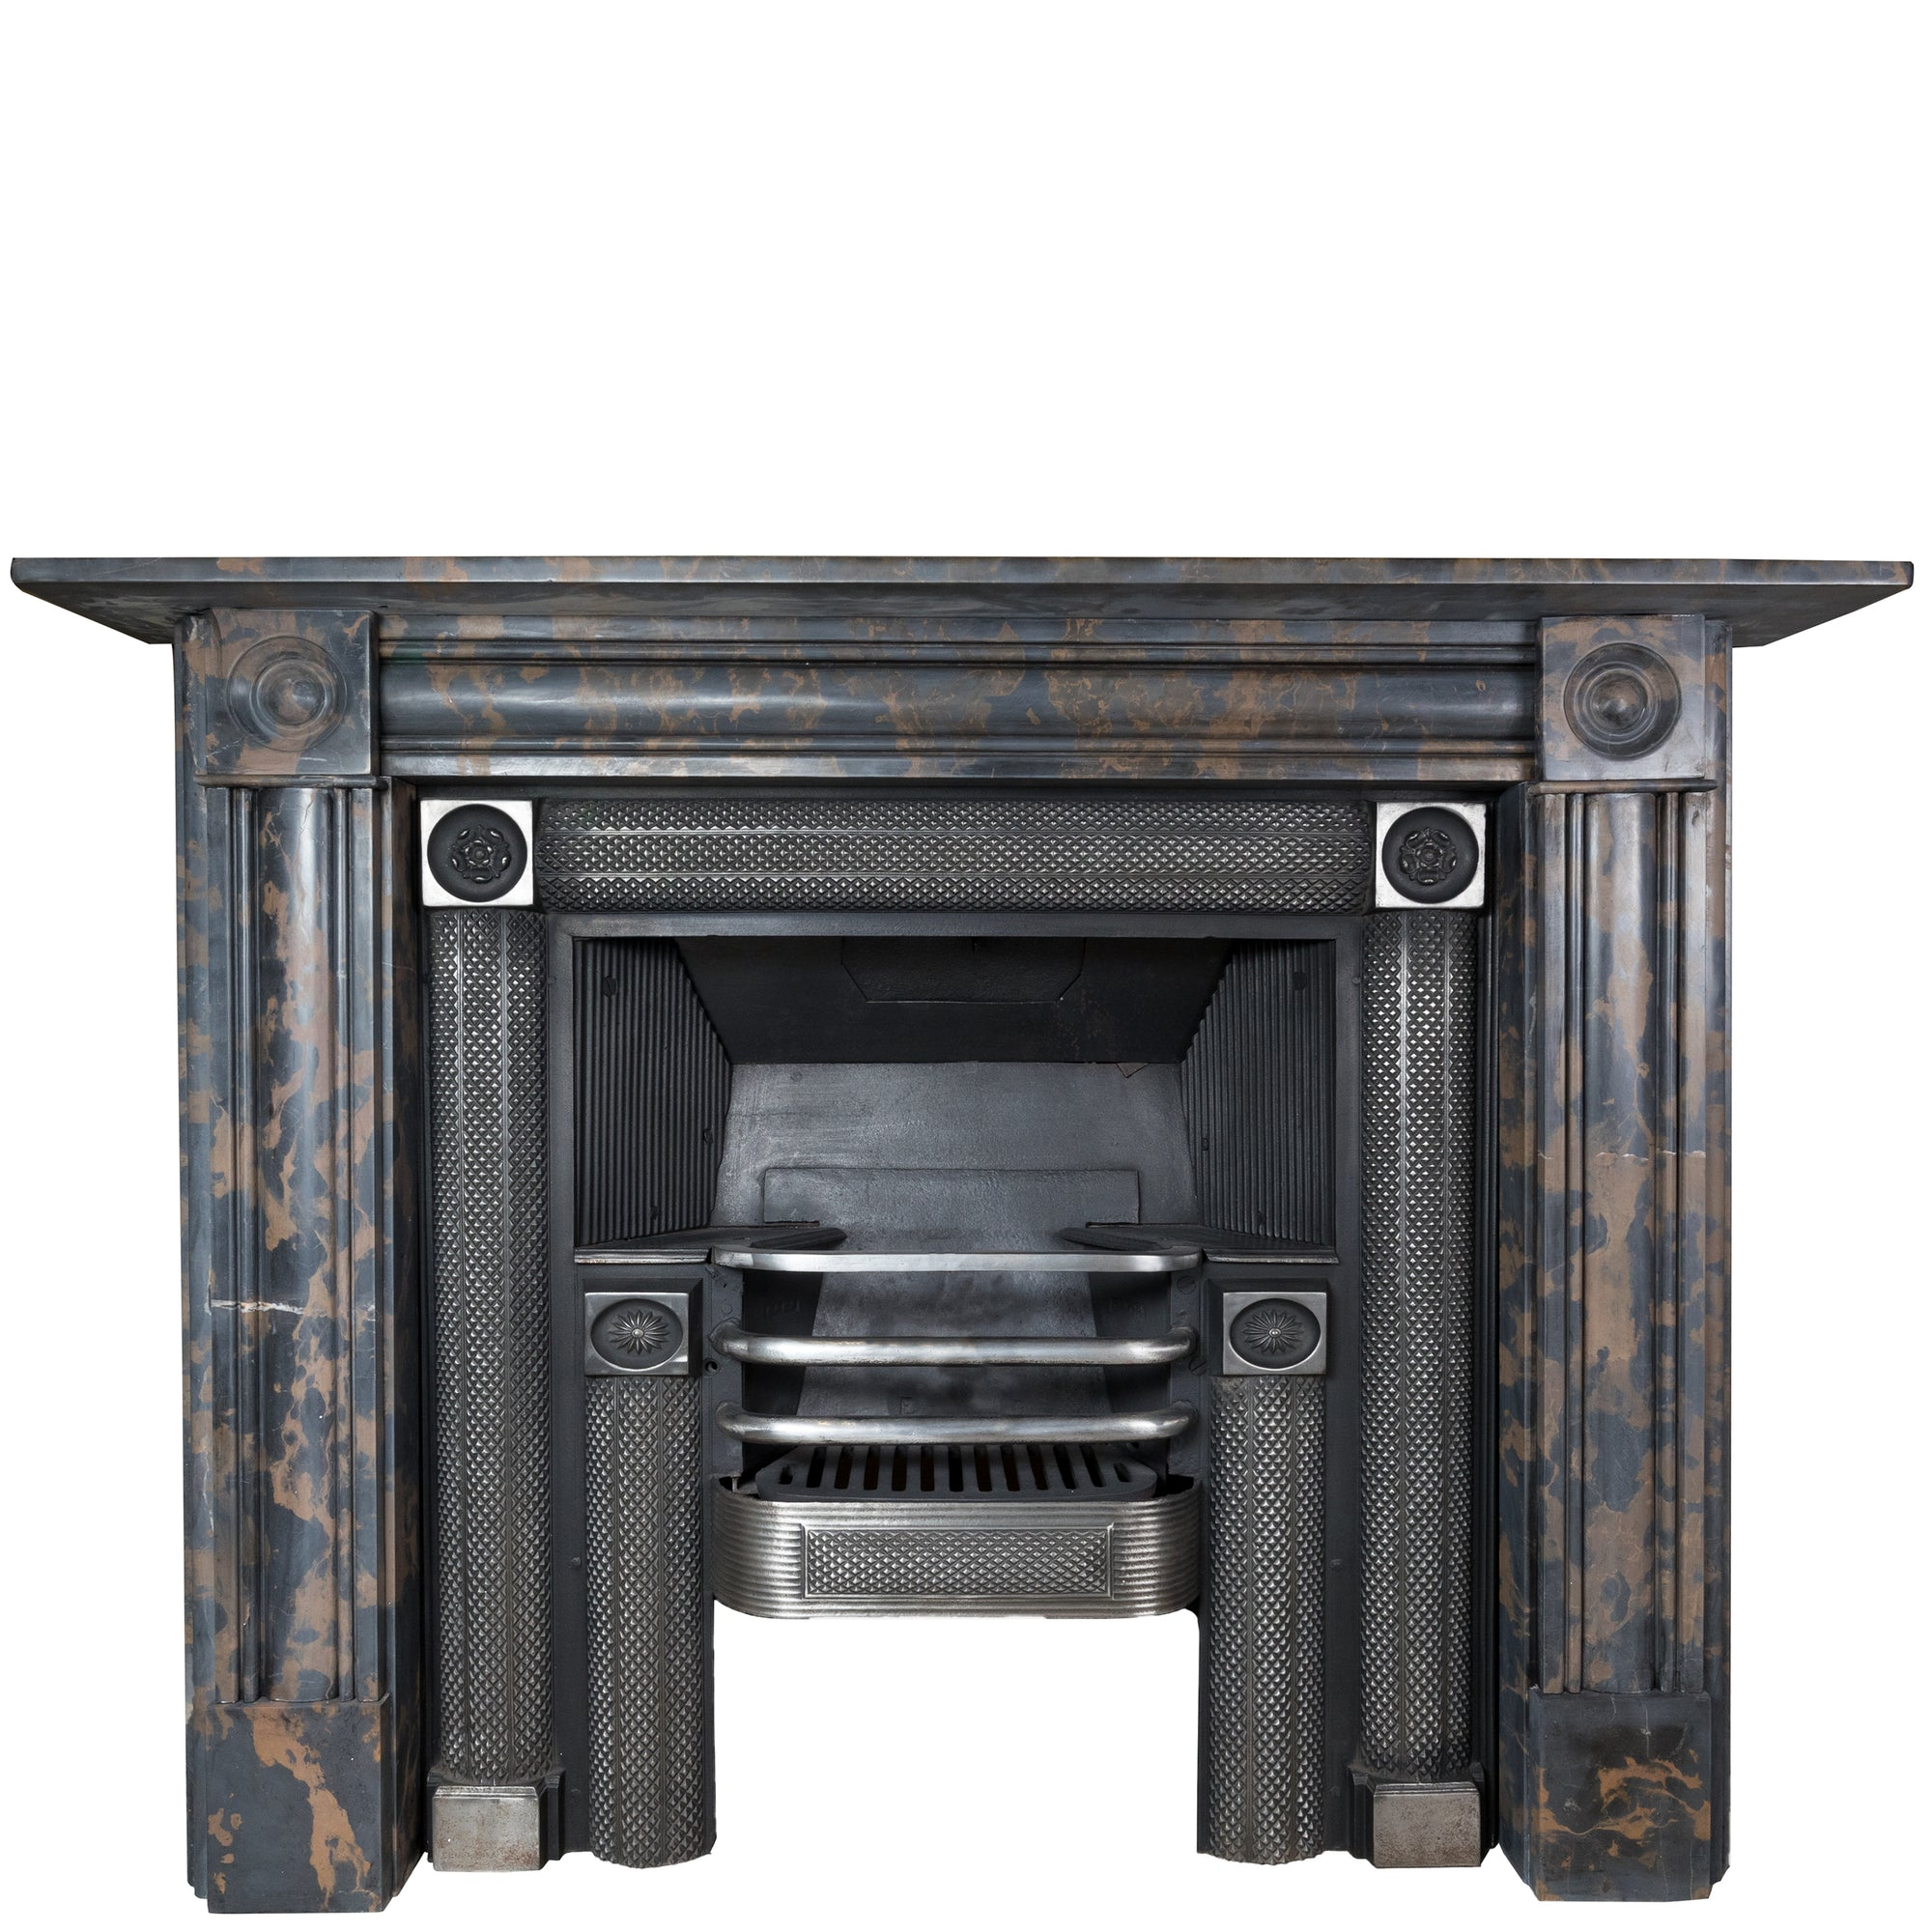 Portoro Marble Georgian Regency Style Bullseye Fireplace Surround